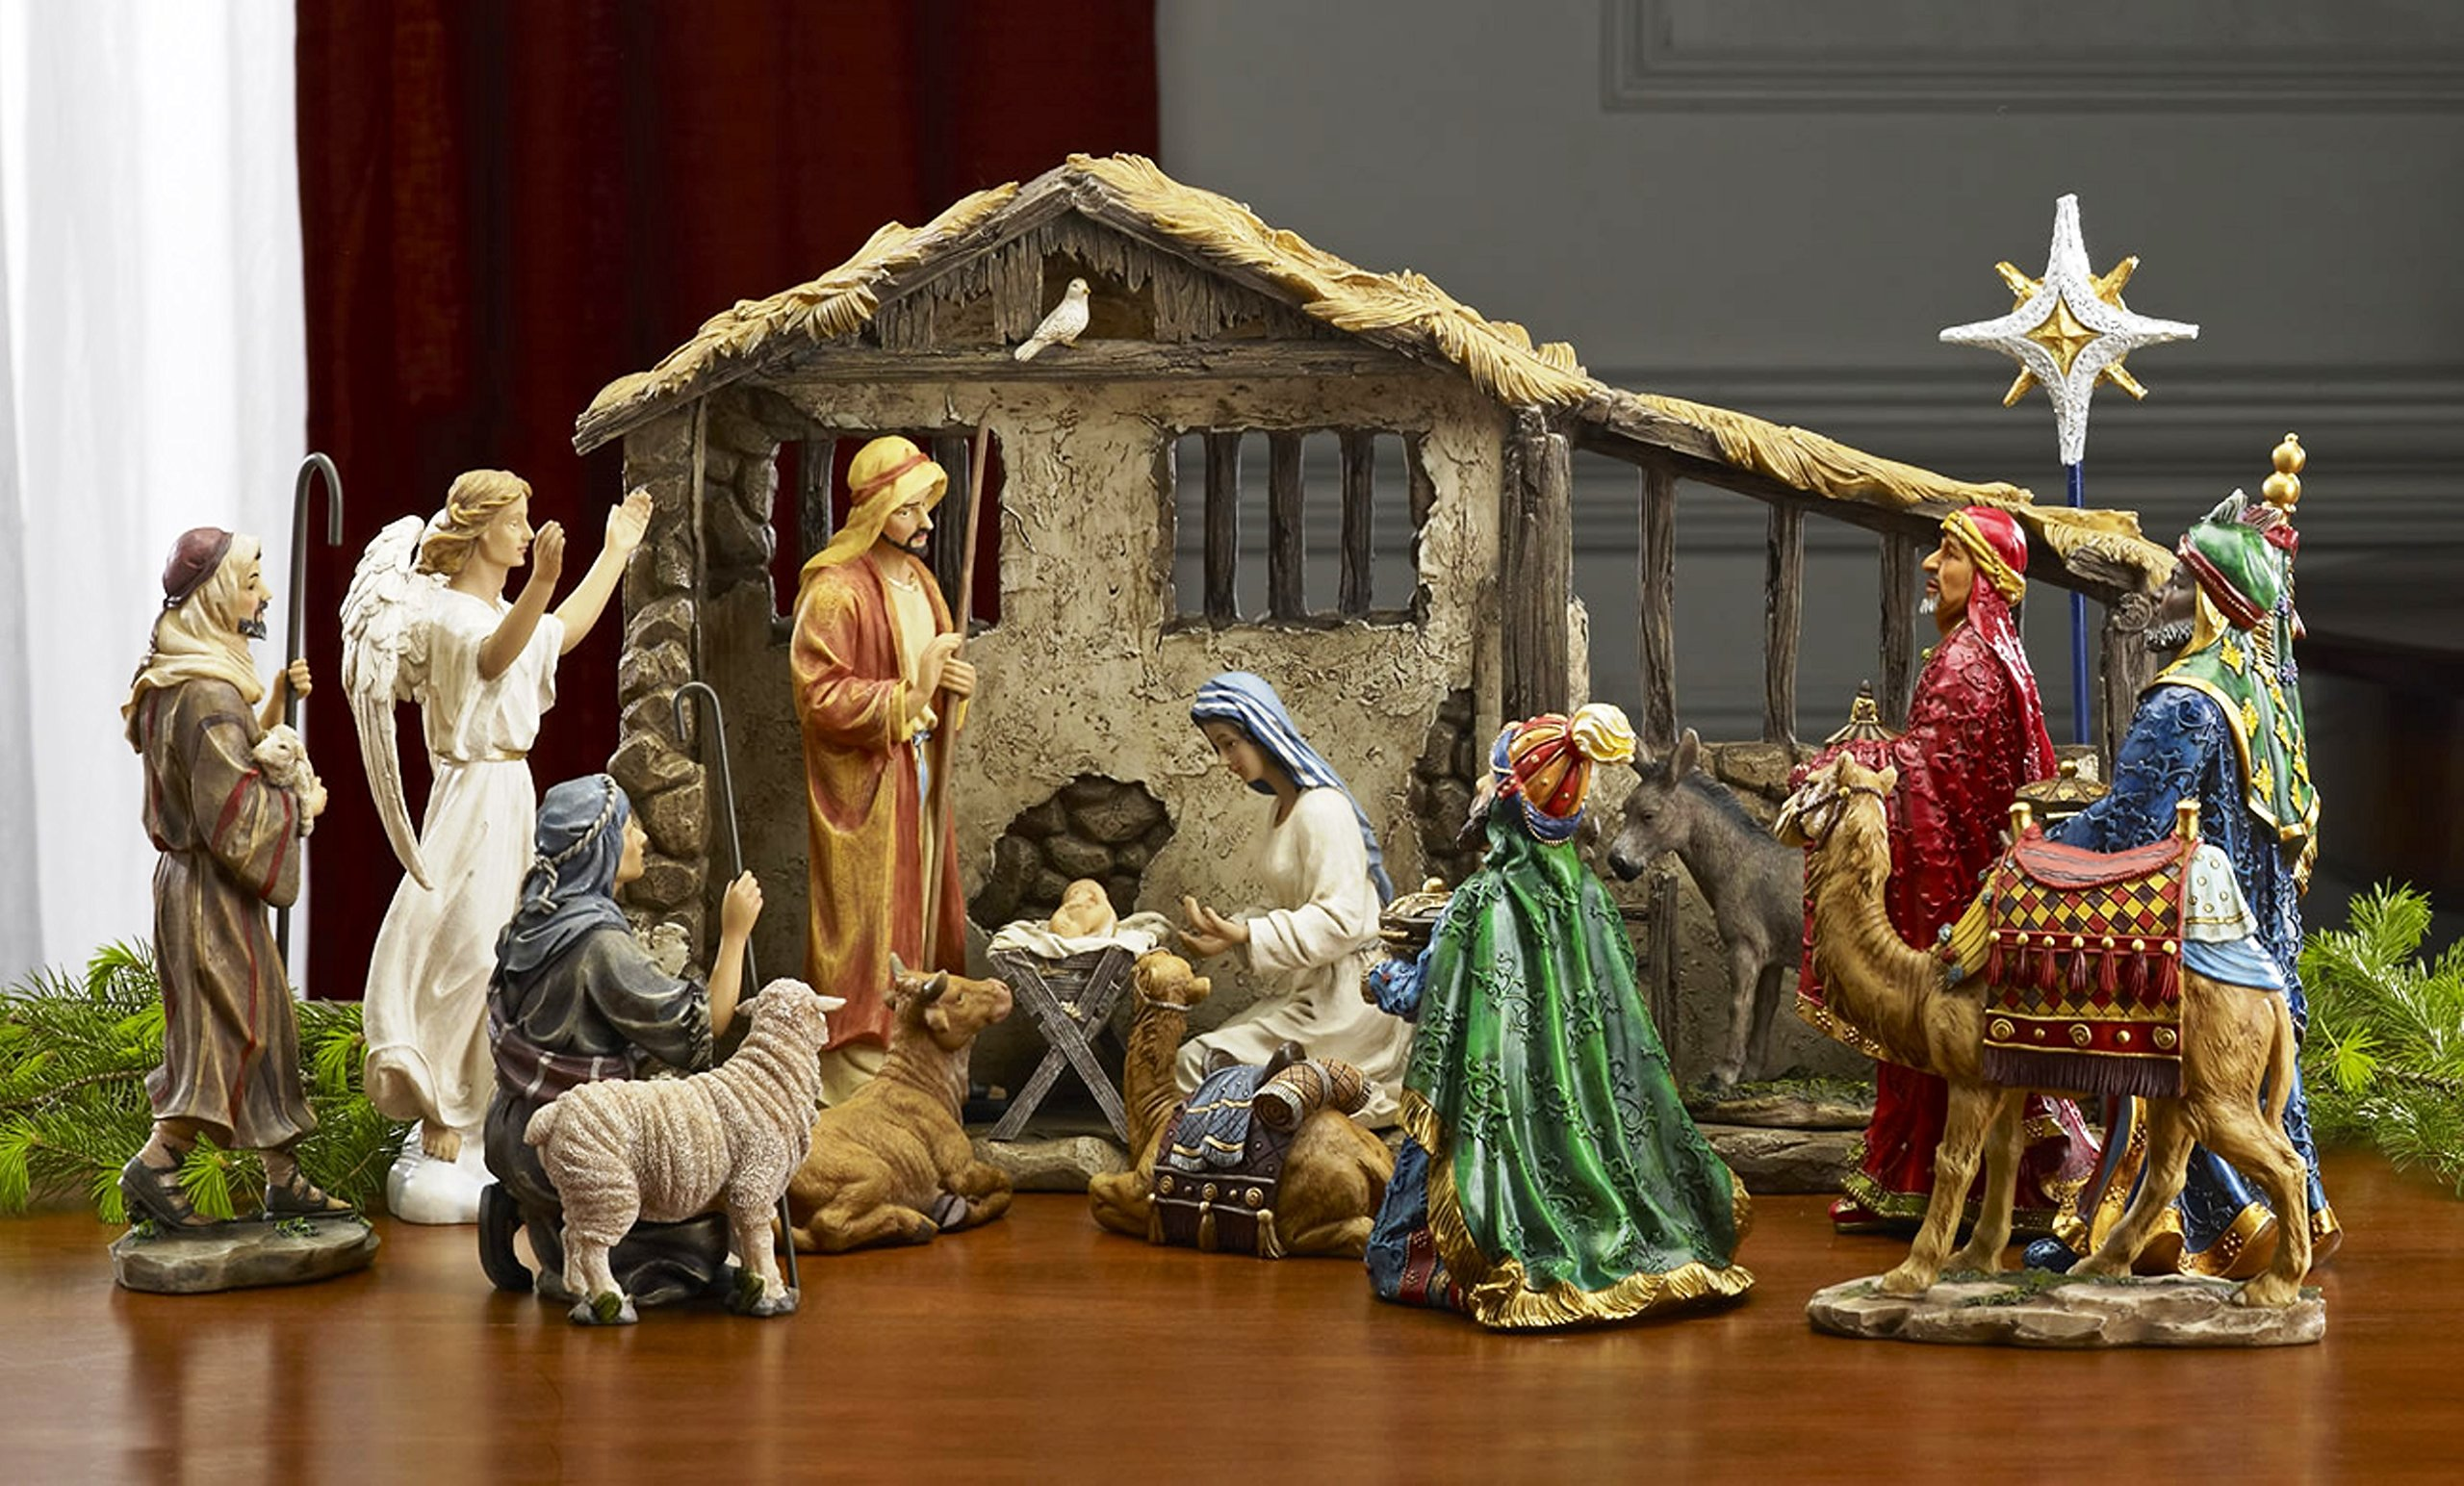 Deluxe Edition 16 Piece 10 Inch Christmas Nativity Set with Real Frankincense Gold and Myrrh. by Three Kings Gifts